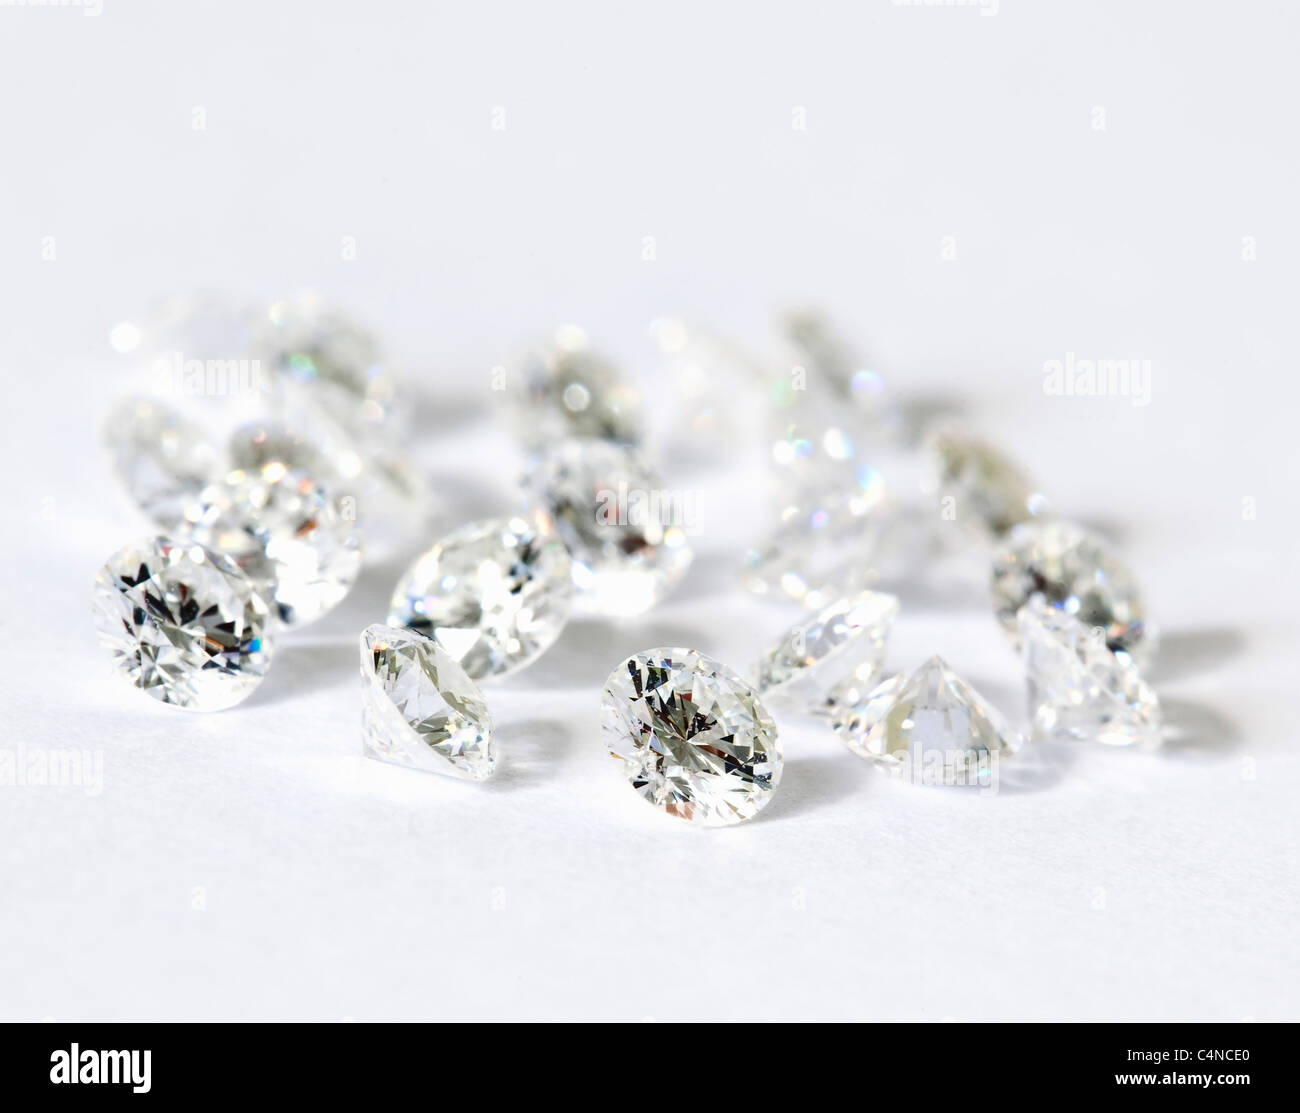 committed ensuring stringent that we difference manner free of education peace our a beers in sourced responsible and expertise diamonds certification are all de policy conflict the diamond mind to ethical